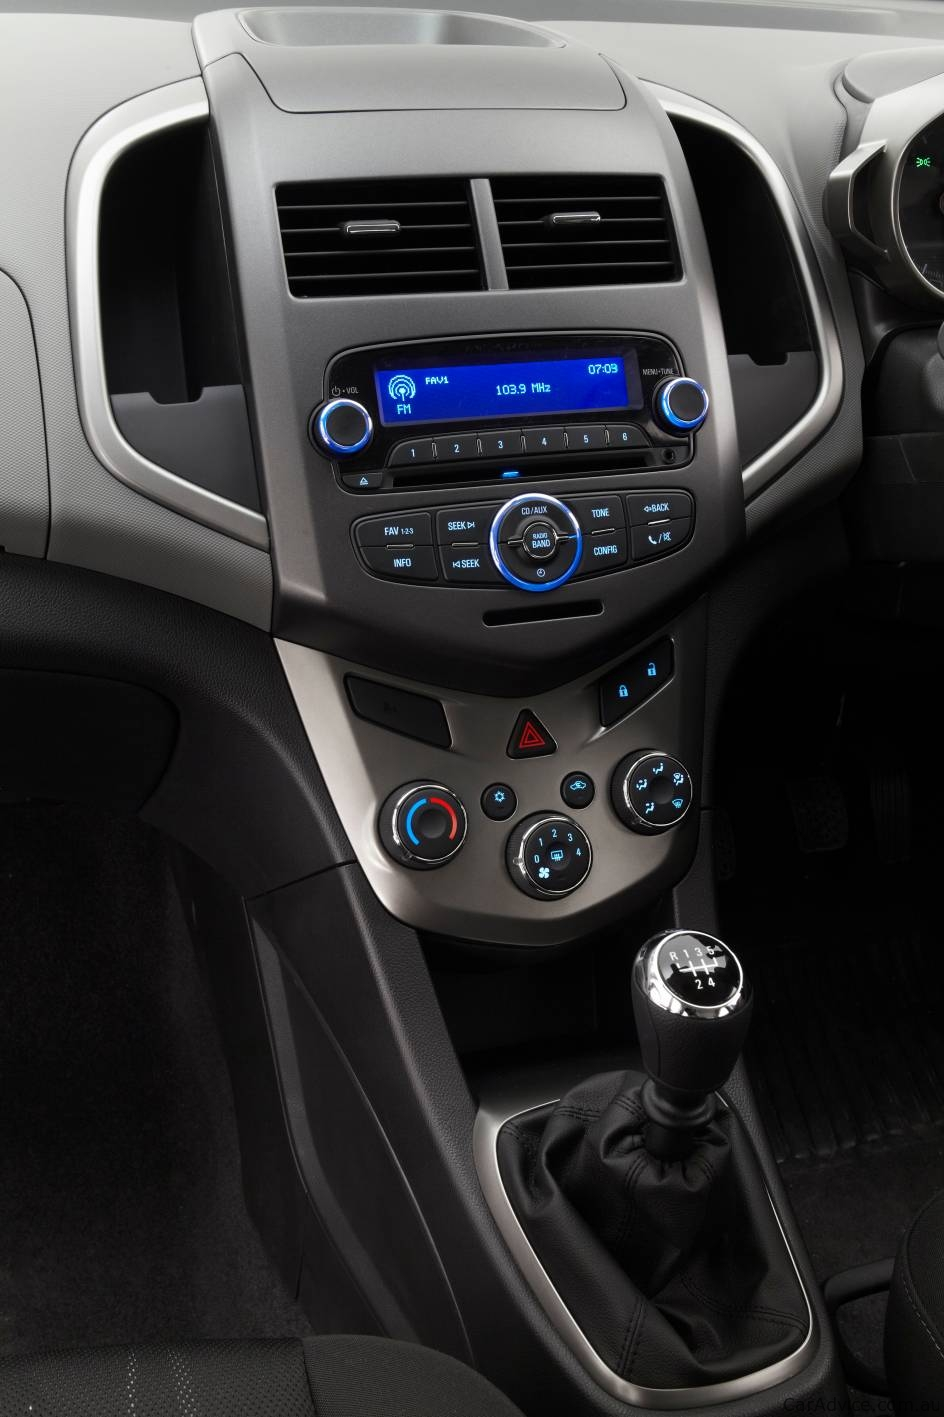 2012 Holden Barina Australian Prices And Specifications